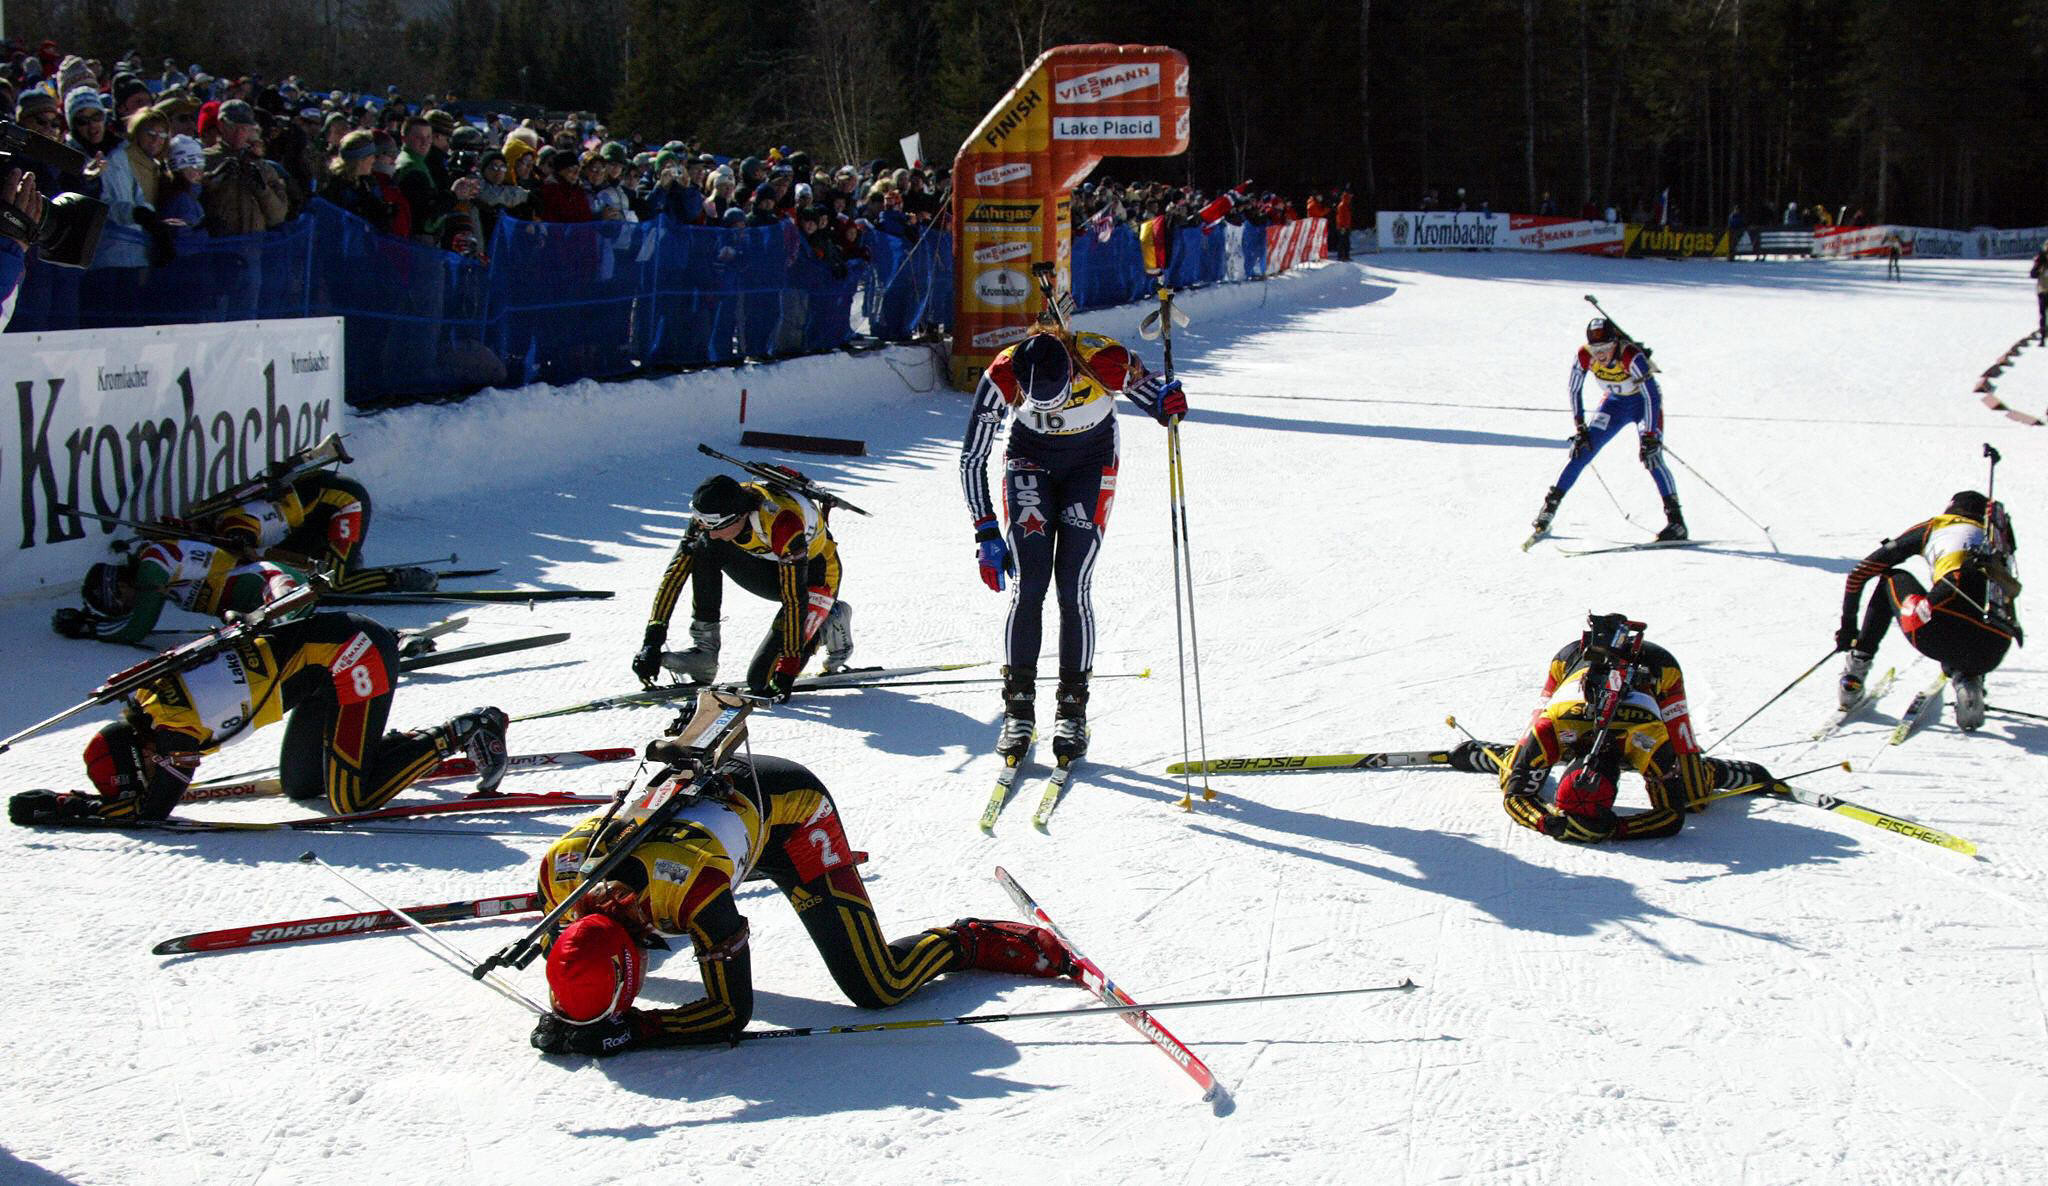 Lake Placid staged a Biathlon World Cup leg during the 2003-2004 season ©Getty Images